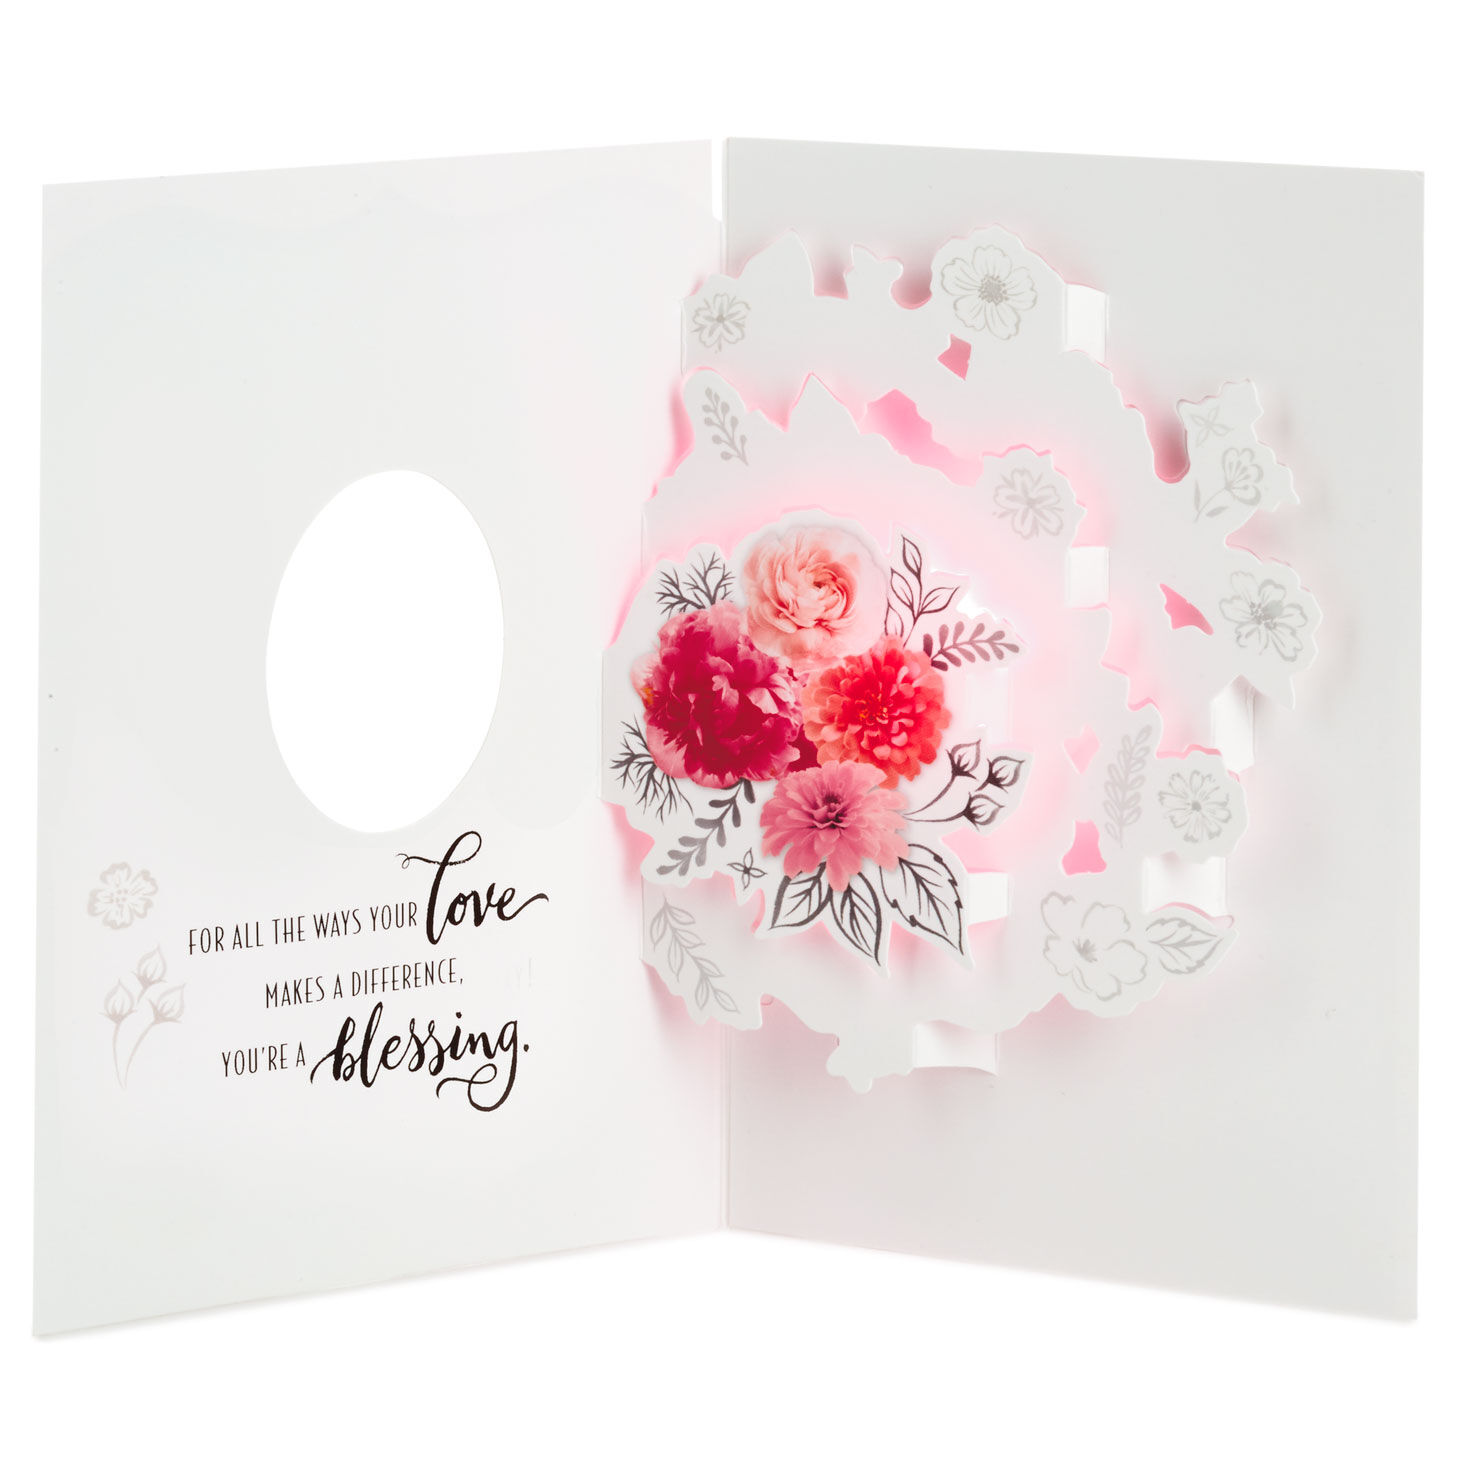 """Fun Musical SISTER BIRTHDAY Card Song /""""WHAT I LIKE ABOUT YOU/"""" by the Romantics"""